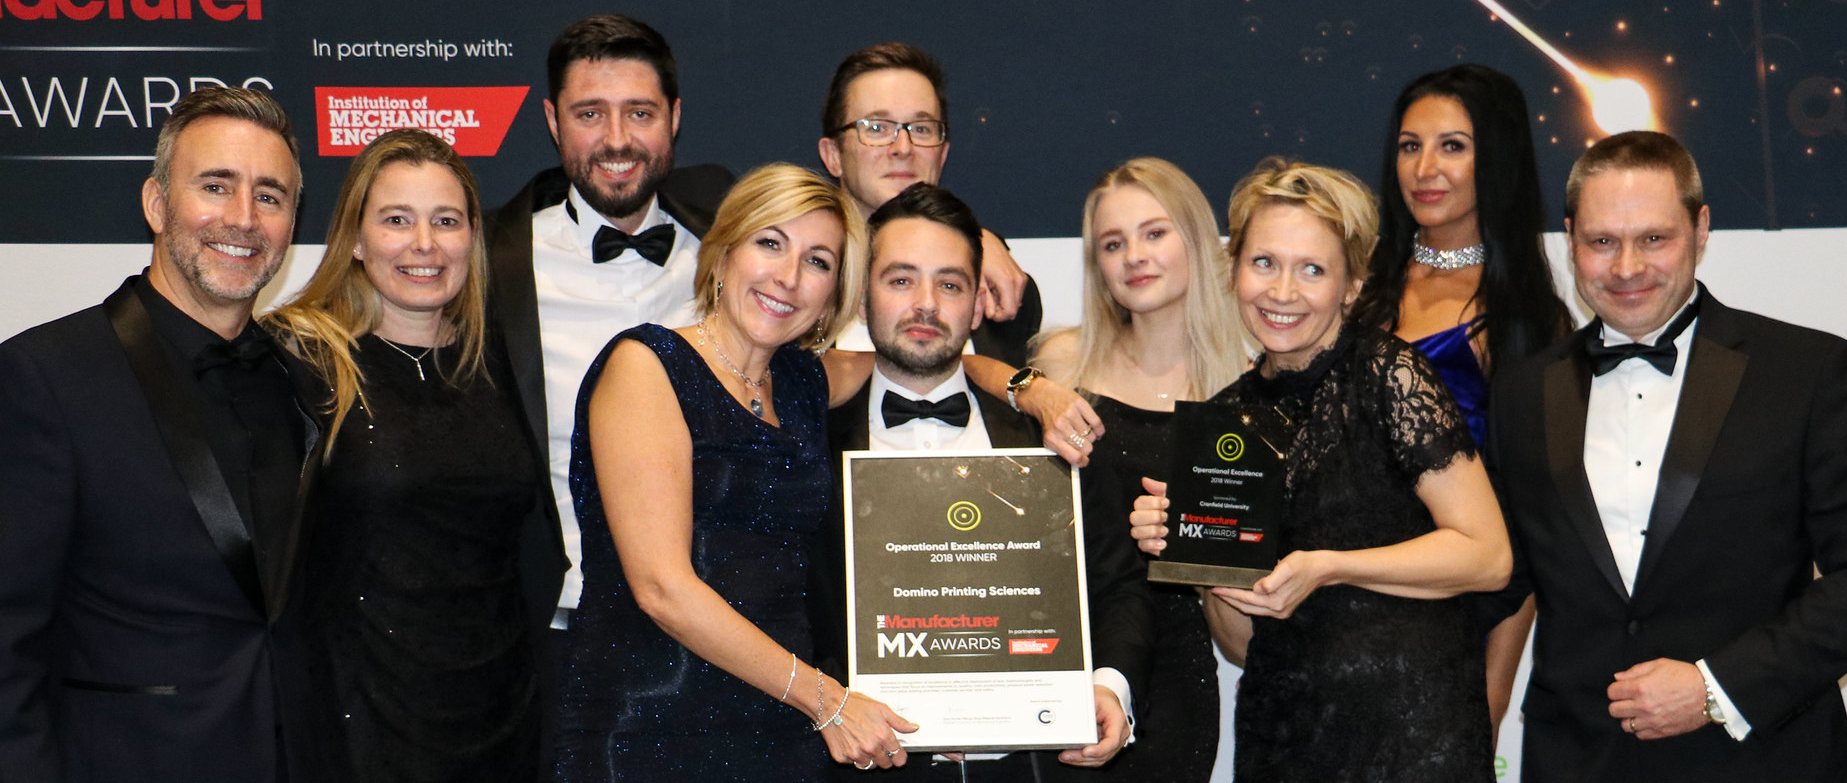 CROP - Domino Printing Services - winner of Operational Excellence at The Manufacturer MX Awards 2018 - image courtesy of The Manufacturer.